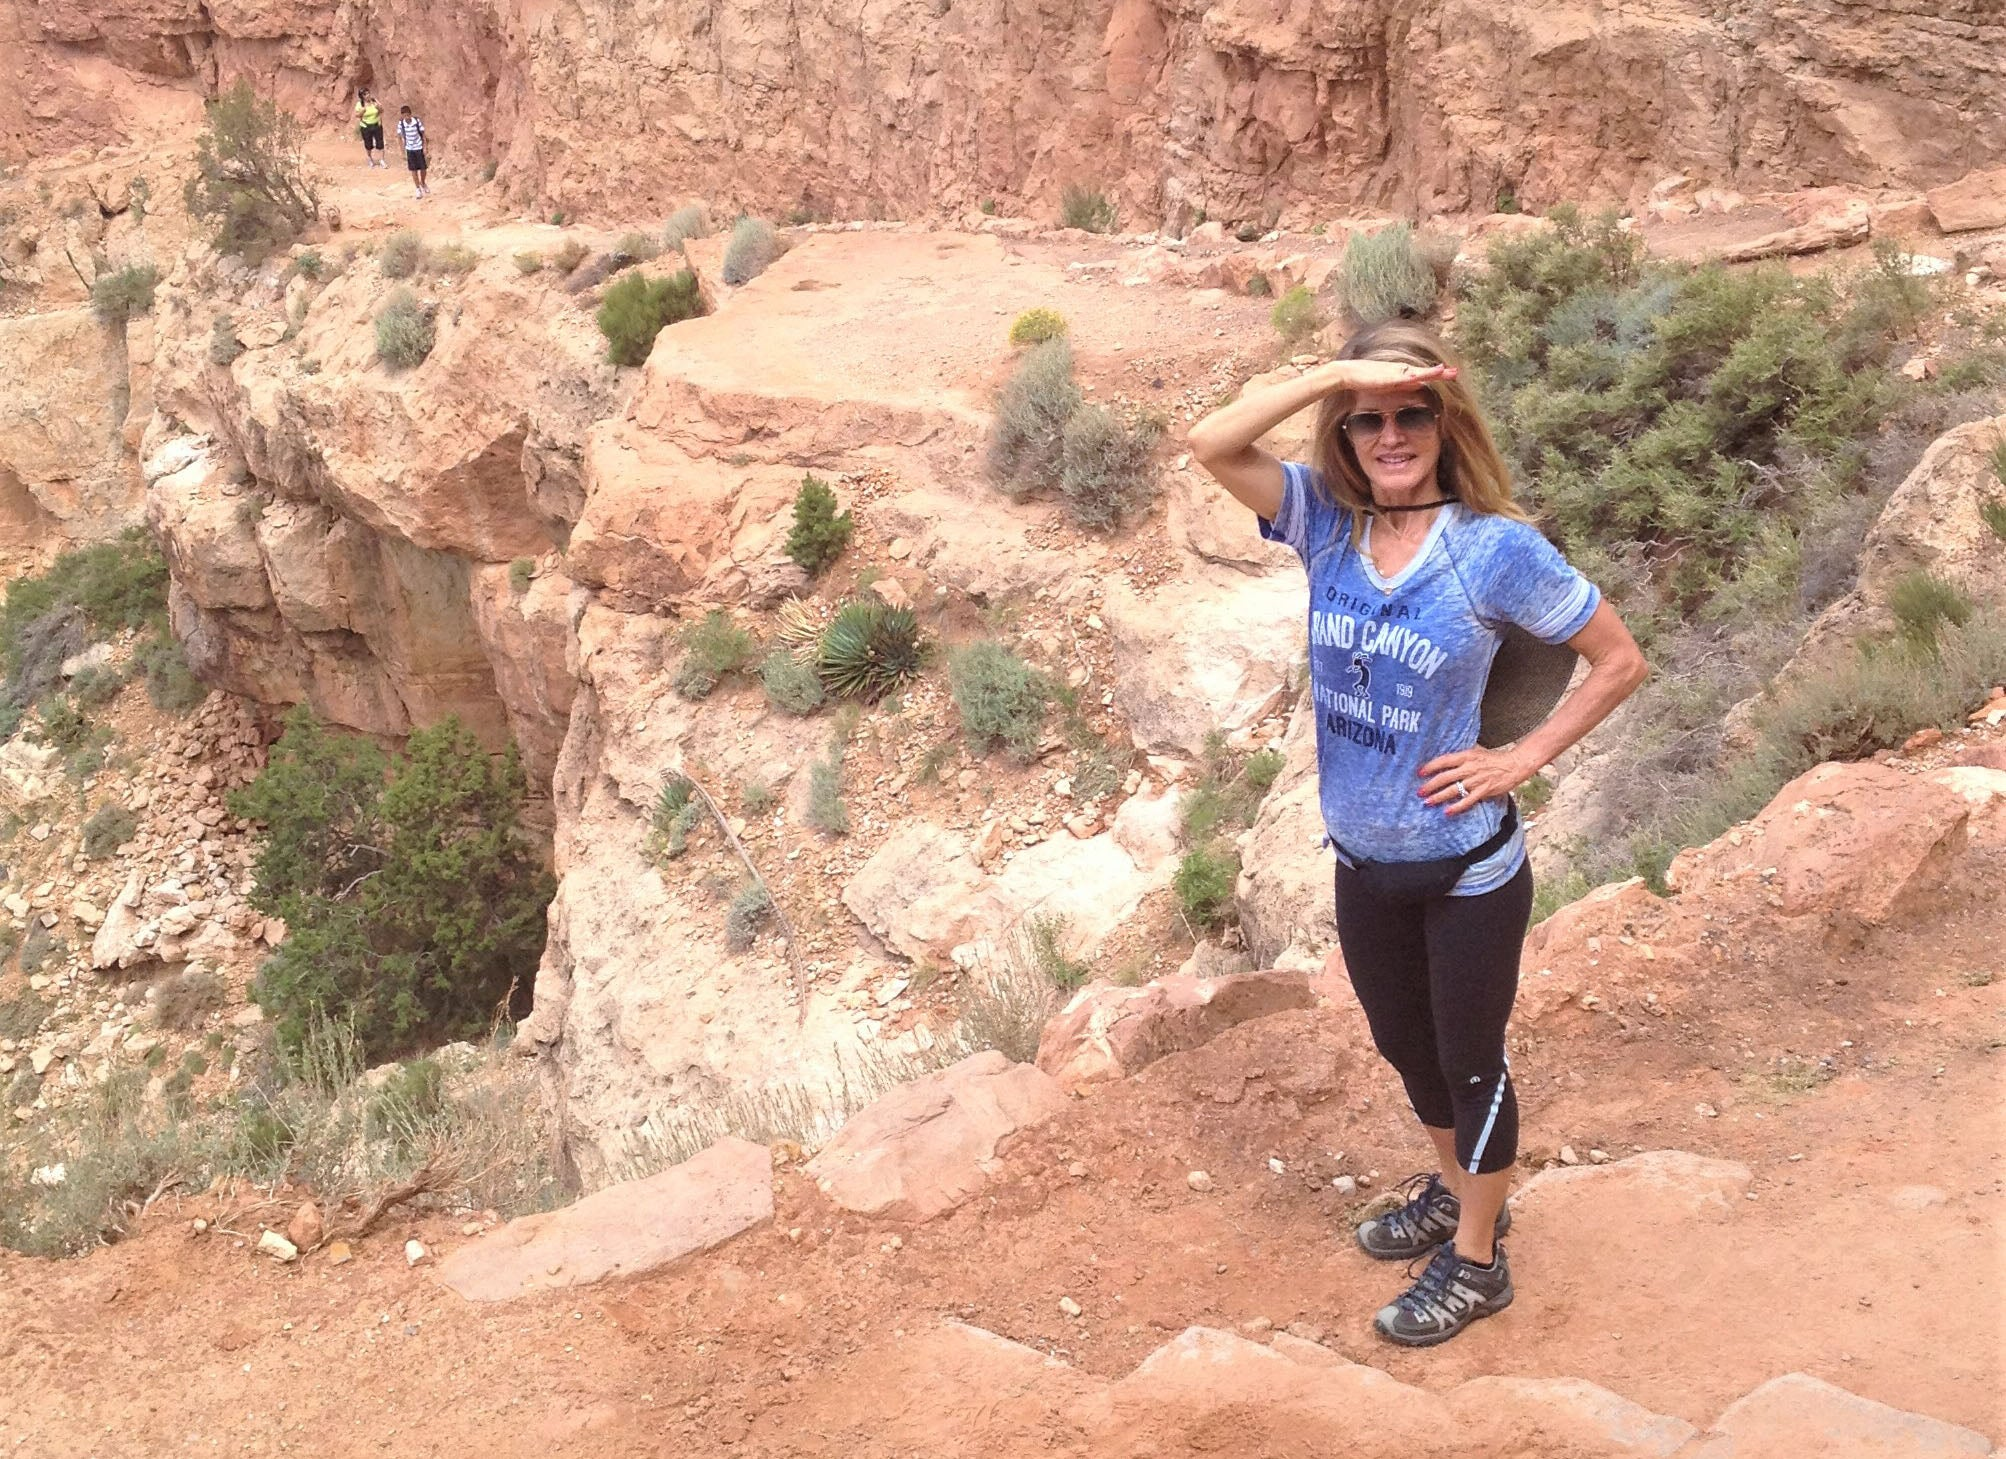 Tina Turbin in the Grand Canyon